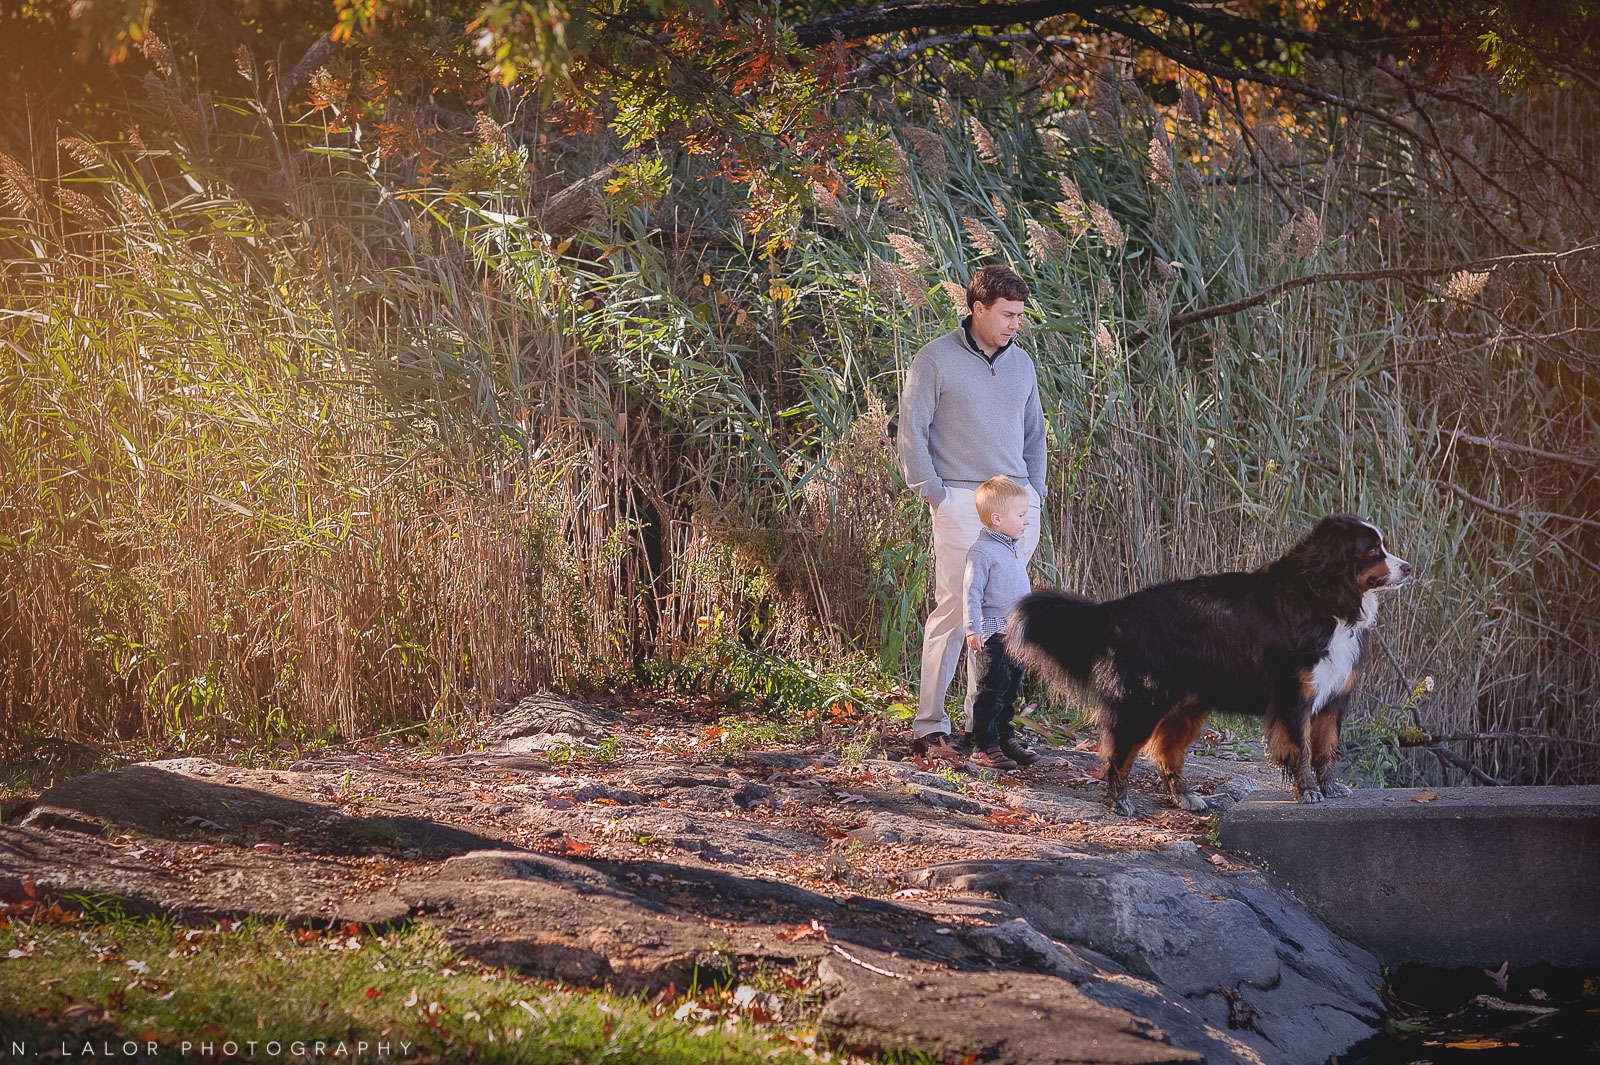 nlalor-photography-2014-styled-family-life-binney-park-old-greenwich-fall-14.jpg